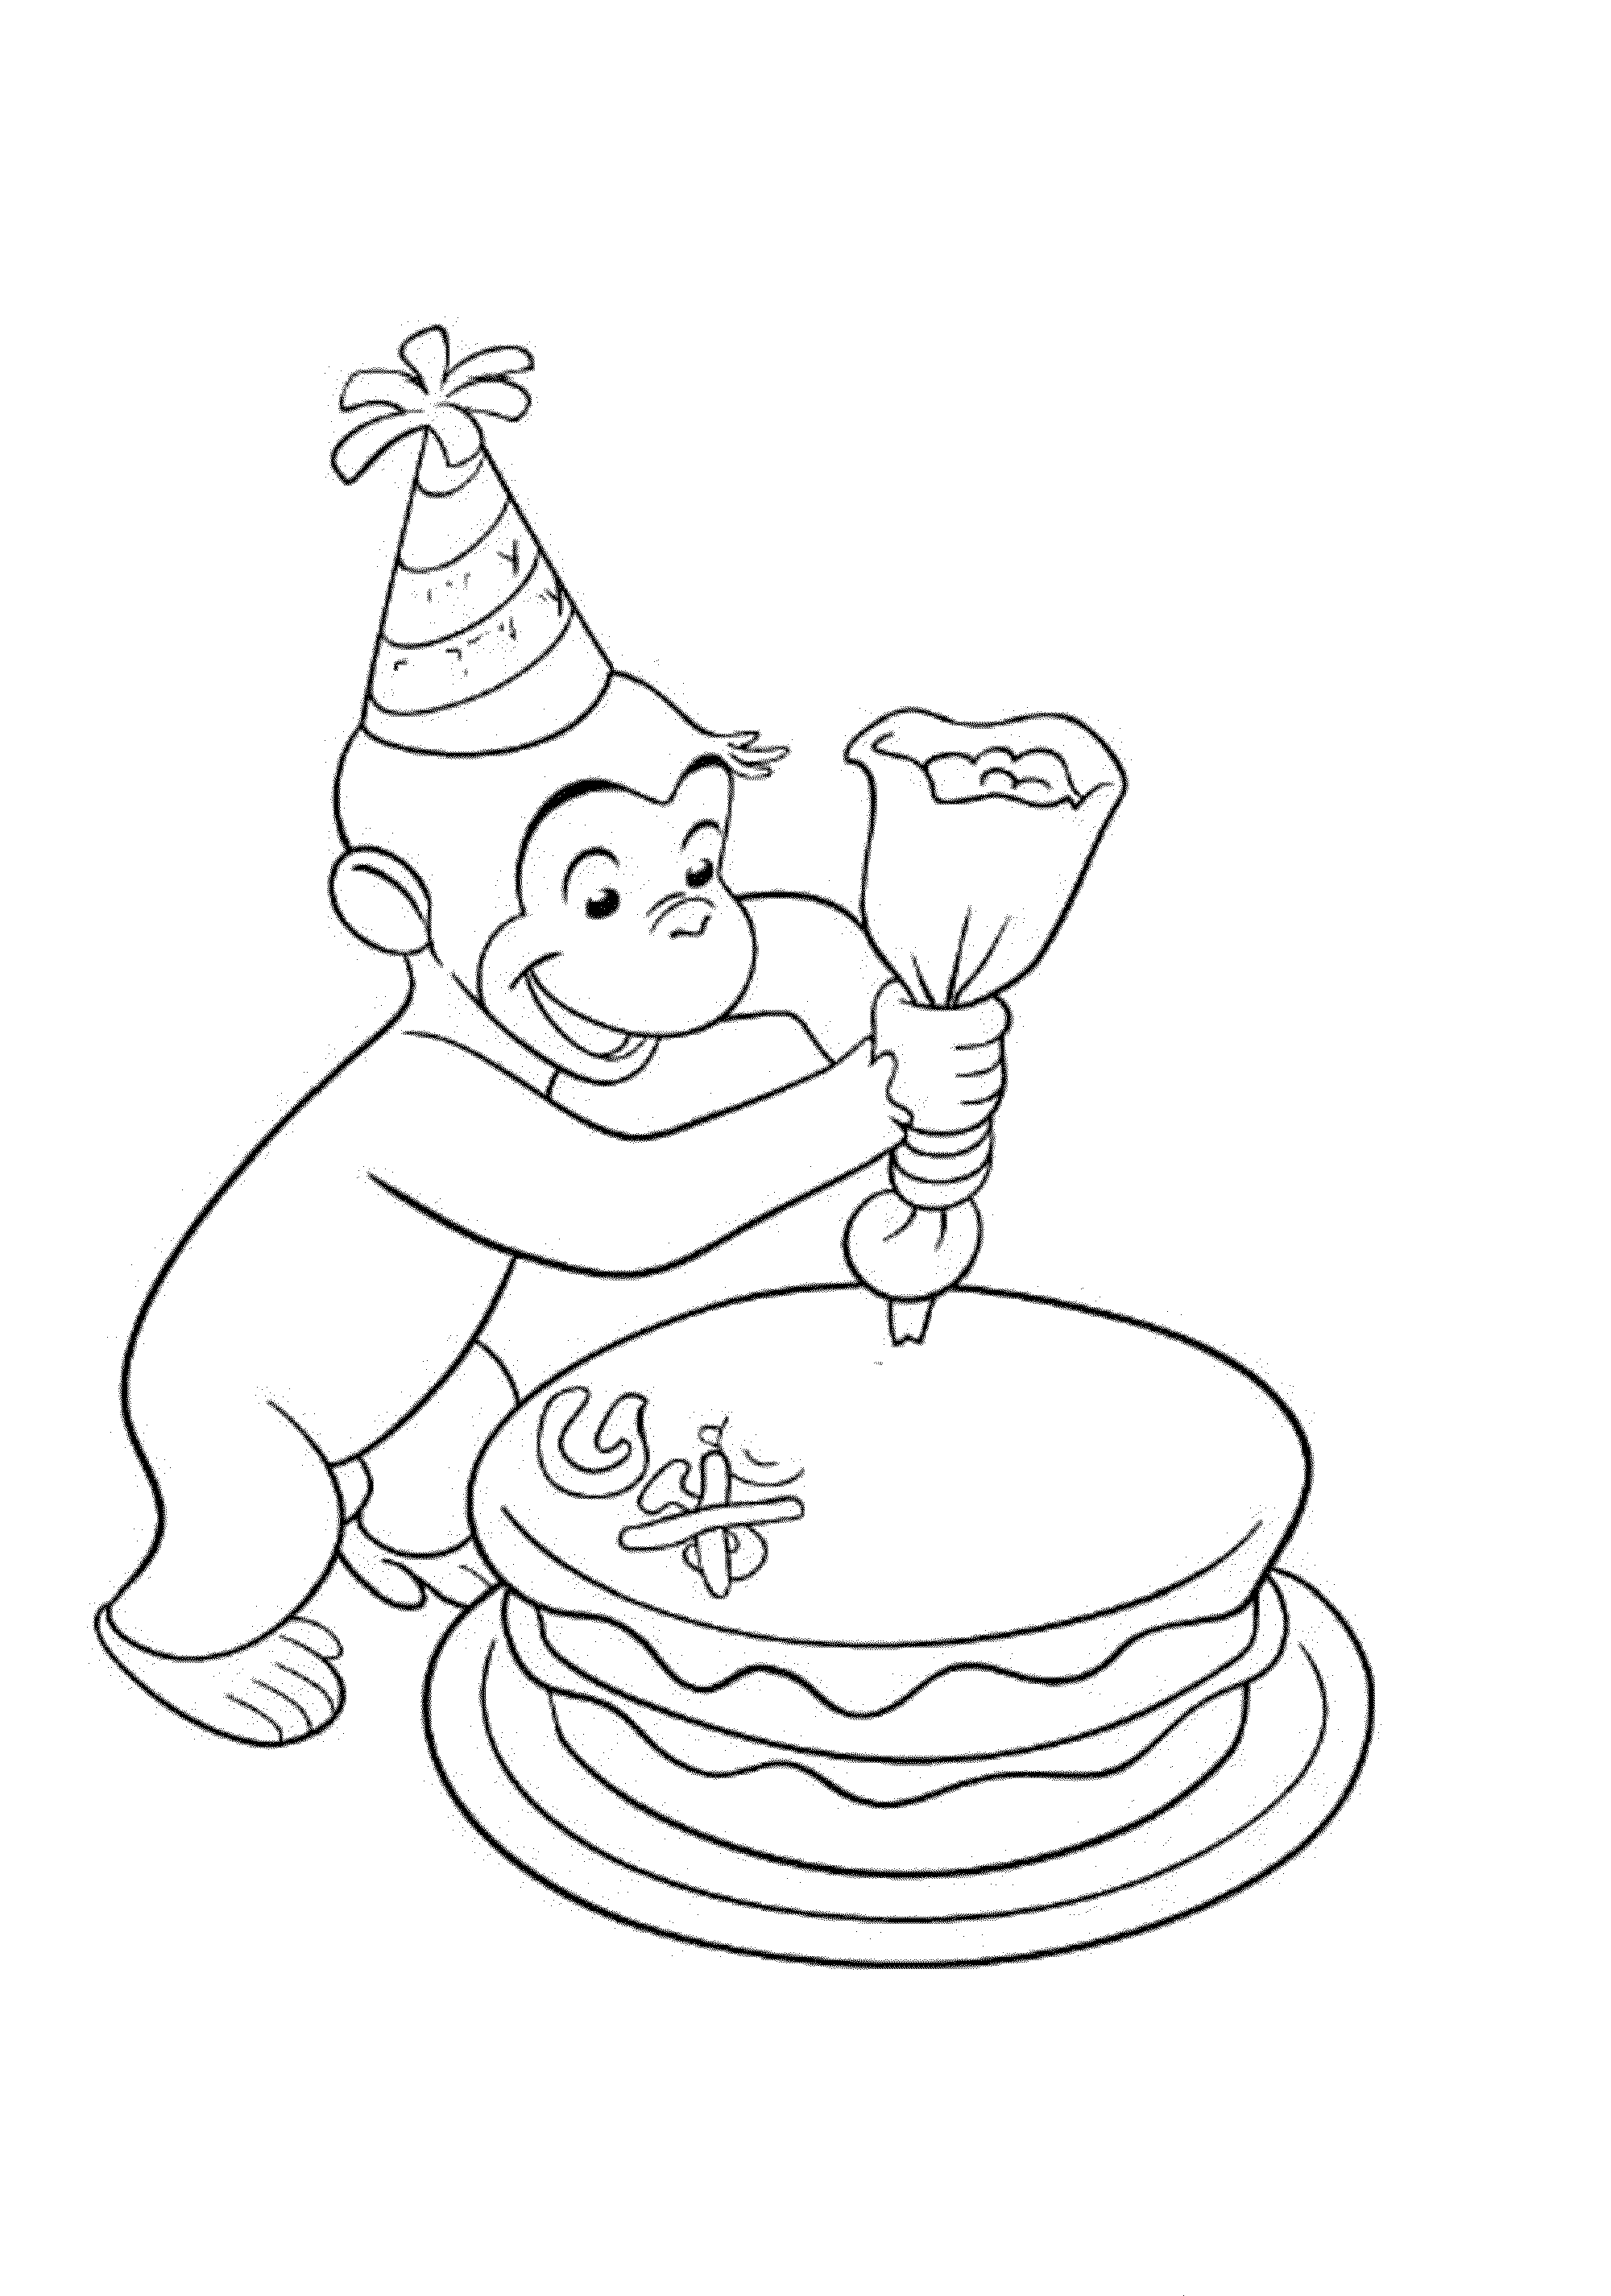 free printable curious george coloring pages free printable curious george coloring pages for kids george printable free pages curious coloring